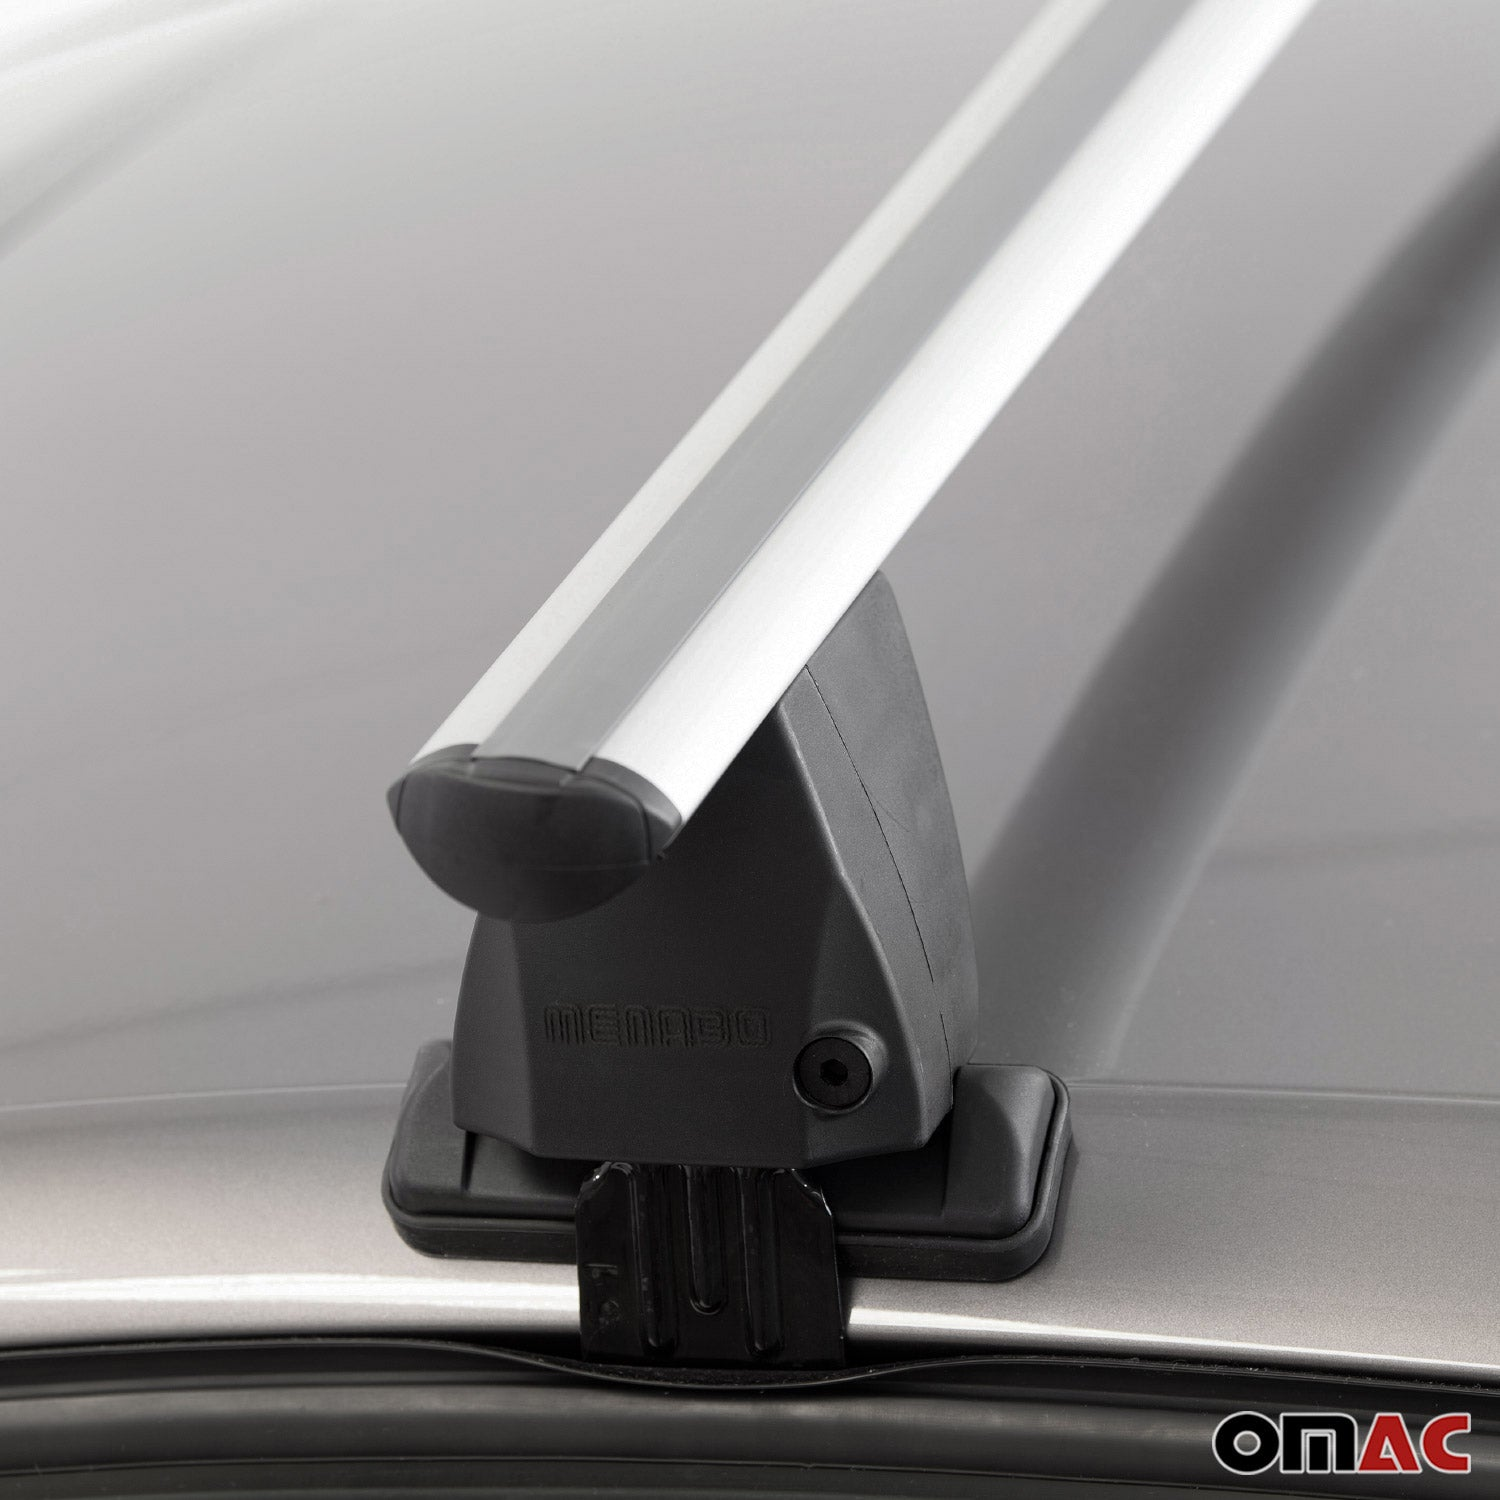 Smooth Roof Rack Cross Bar Luggage Carrier For MINI Cooper Hatchback 2001-2013